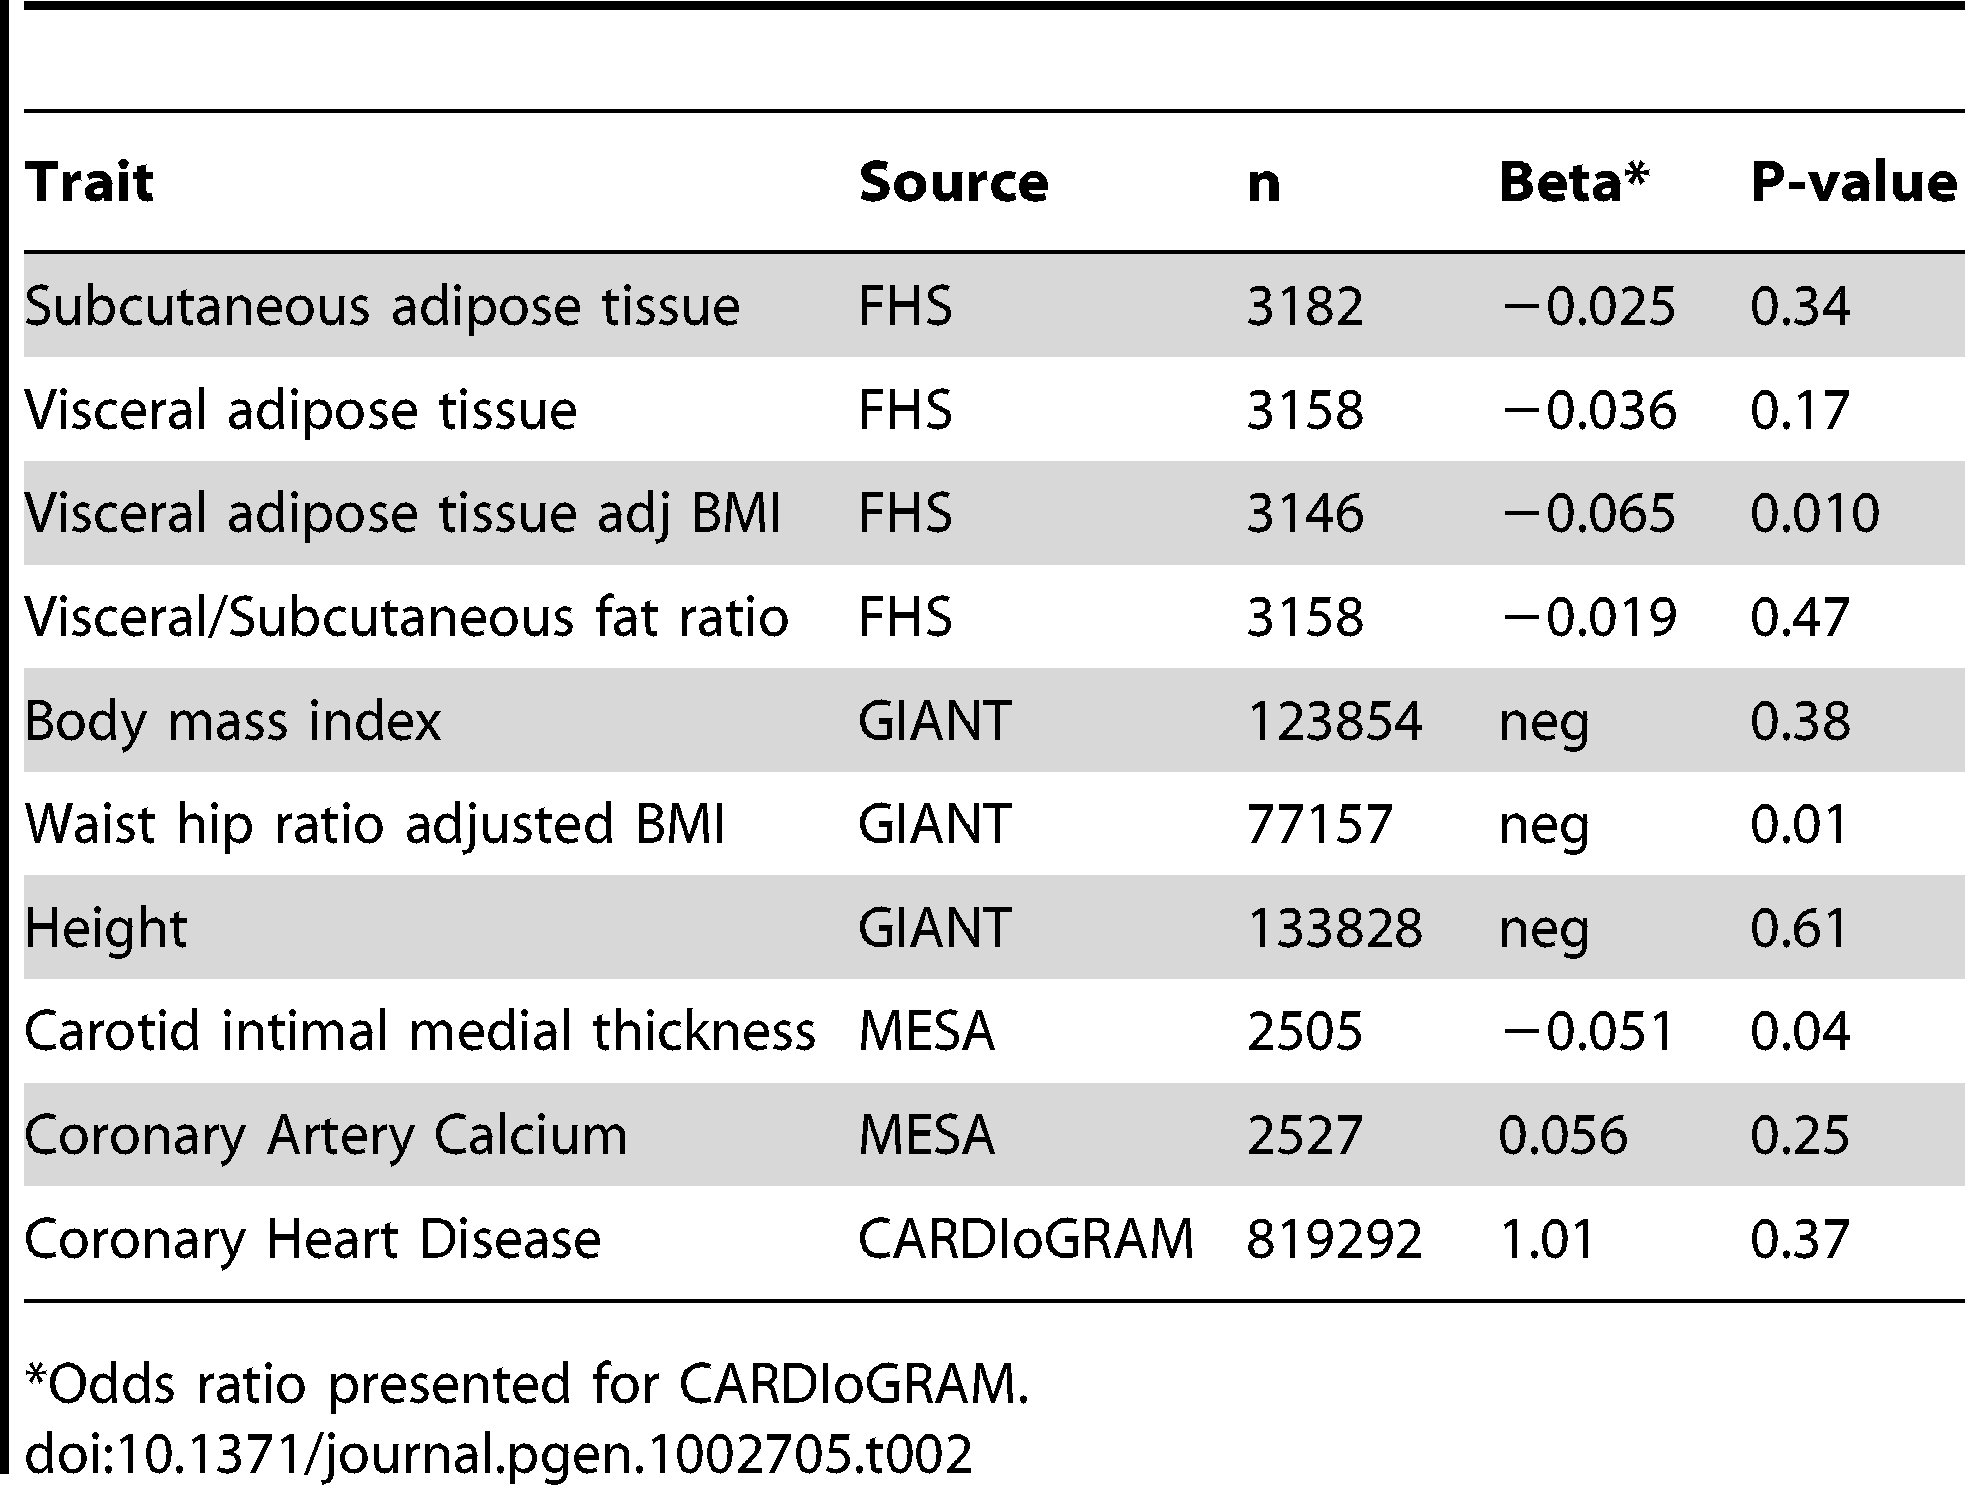 Results for rs10198628 across body composition and atherosclerosis traits in the Framingham Heart Study (n = 3,158) and the GIANT Consortium (n = 77,157 to 133,828) modeled per copy of the A allele.